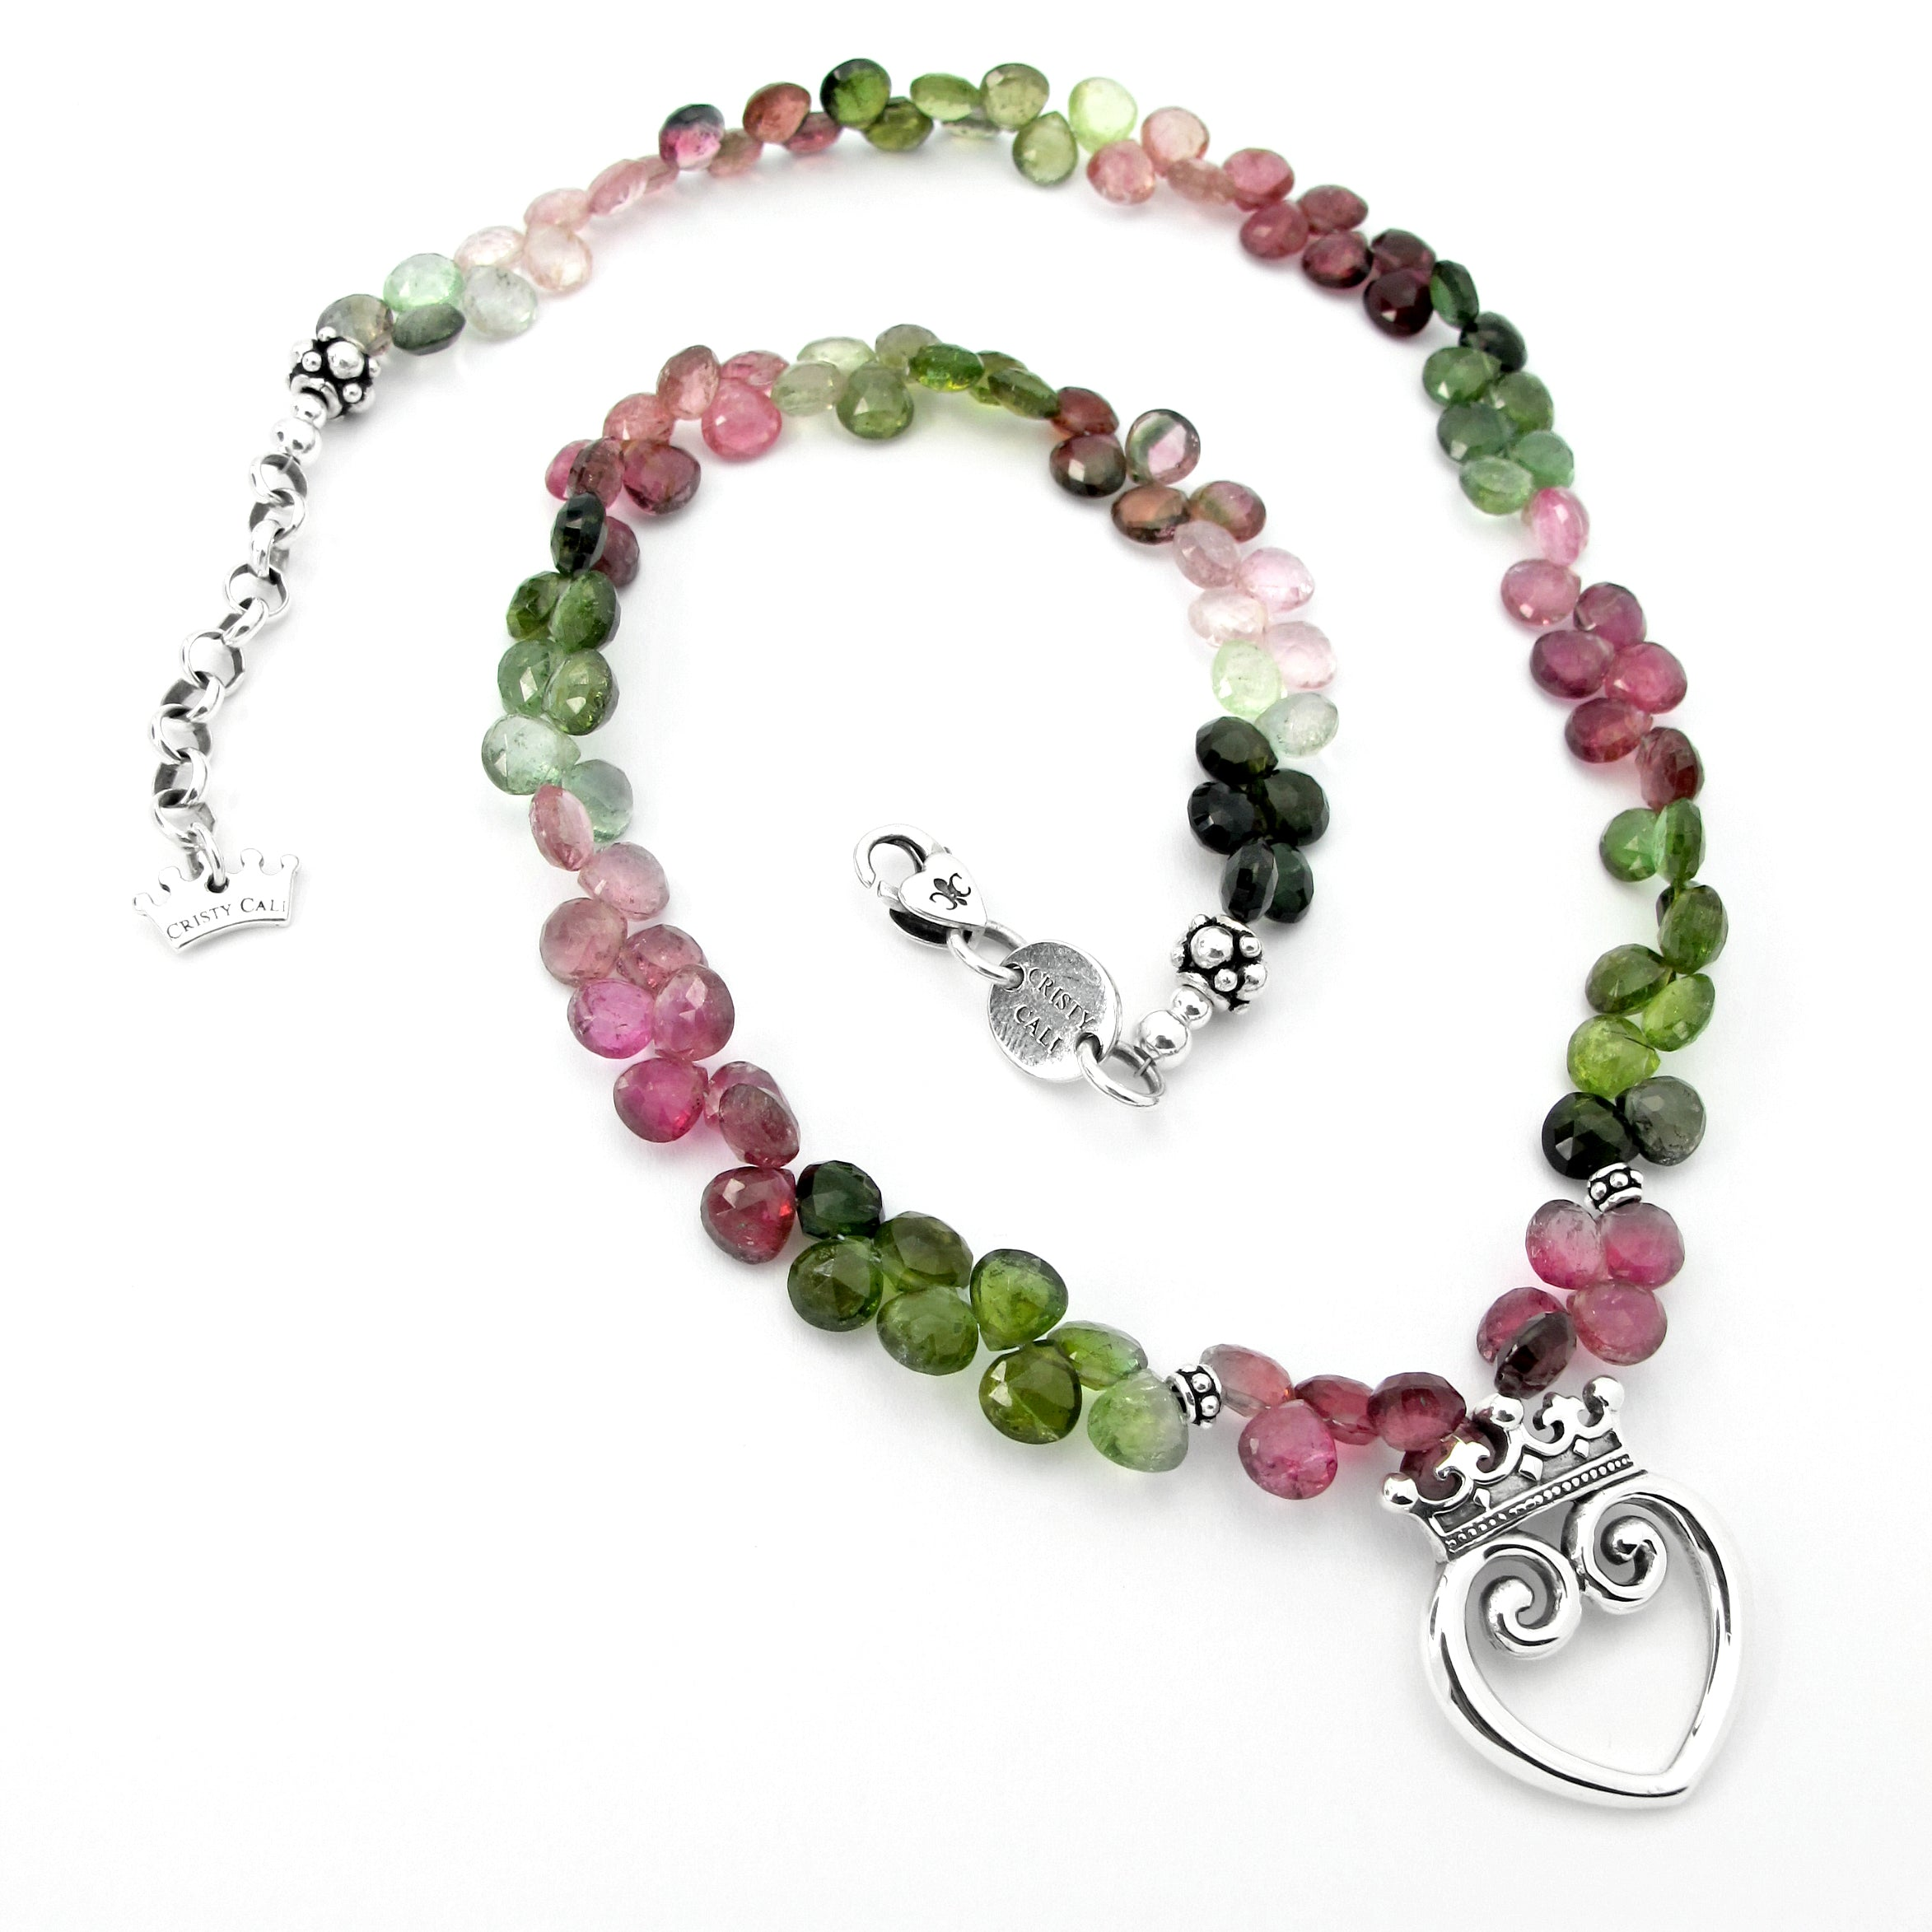 Carnival Tourmaline Queen of Hearts Signature Necklace